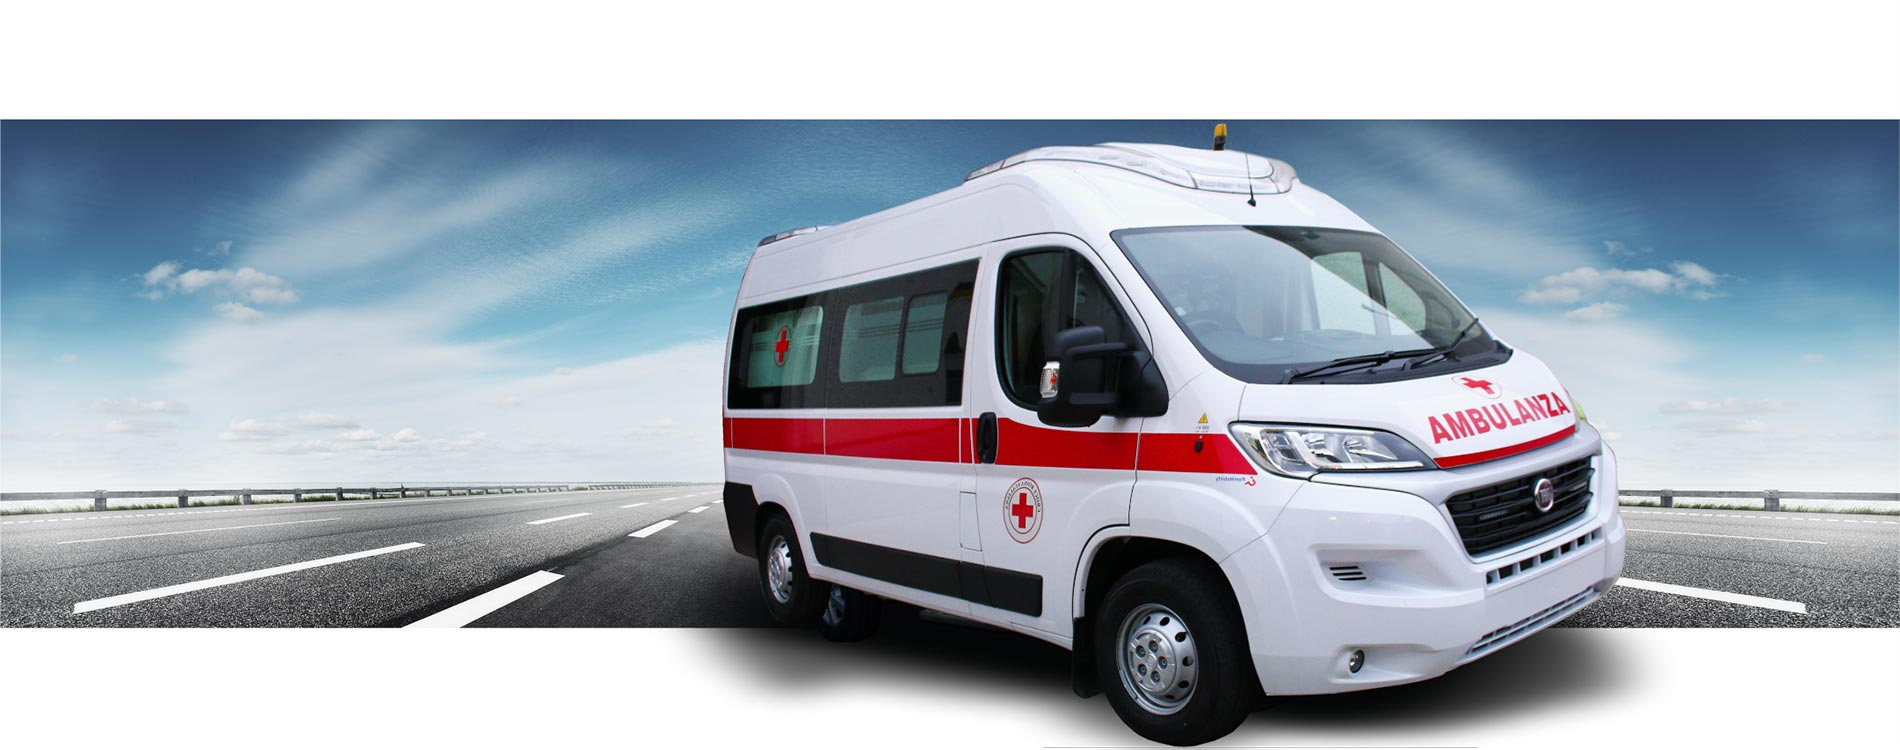 Rescue Vehicle Profile Leonardo Ambulance